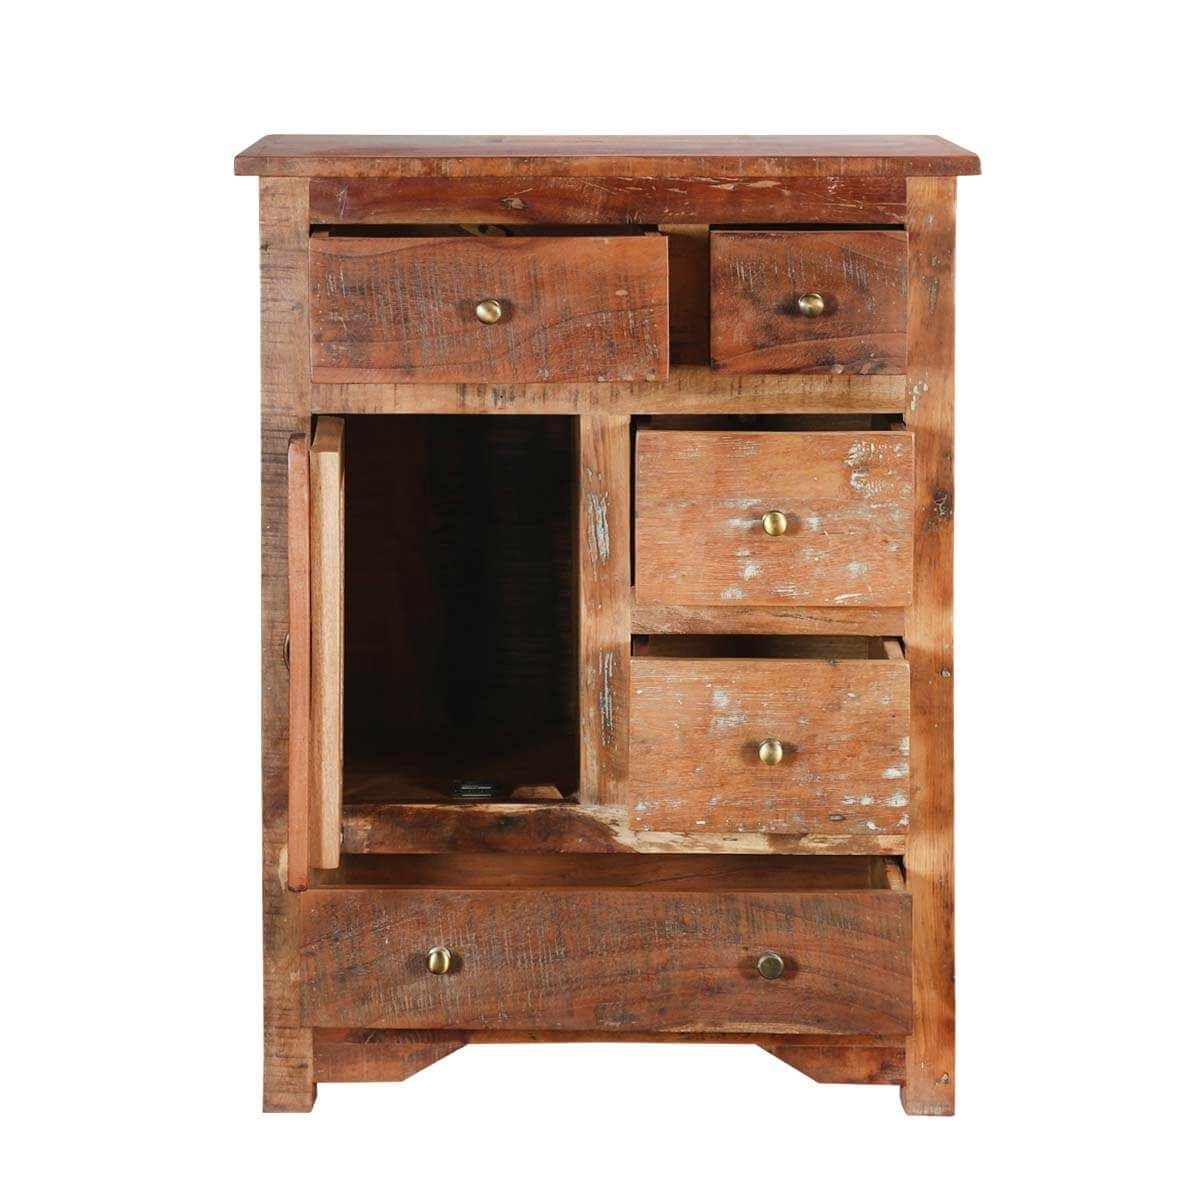 Richmond Natural Rustic Wood 5 Drawers Accent Storage Cabinet. Wood Lamps. Recycled Paper Countertops. Bathroom Wall Coverings. Ethanol Fireplaces. How Much To Remodel Bathroom. Design Your Own House. River Rock Tile. Element 4 Fireplace